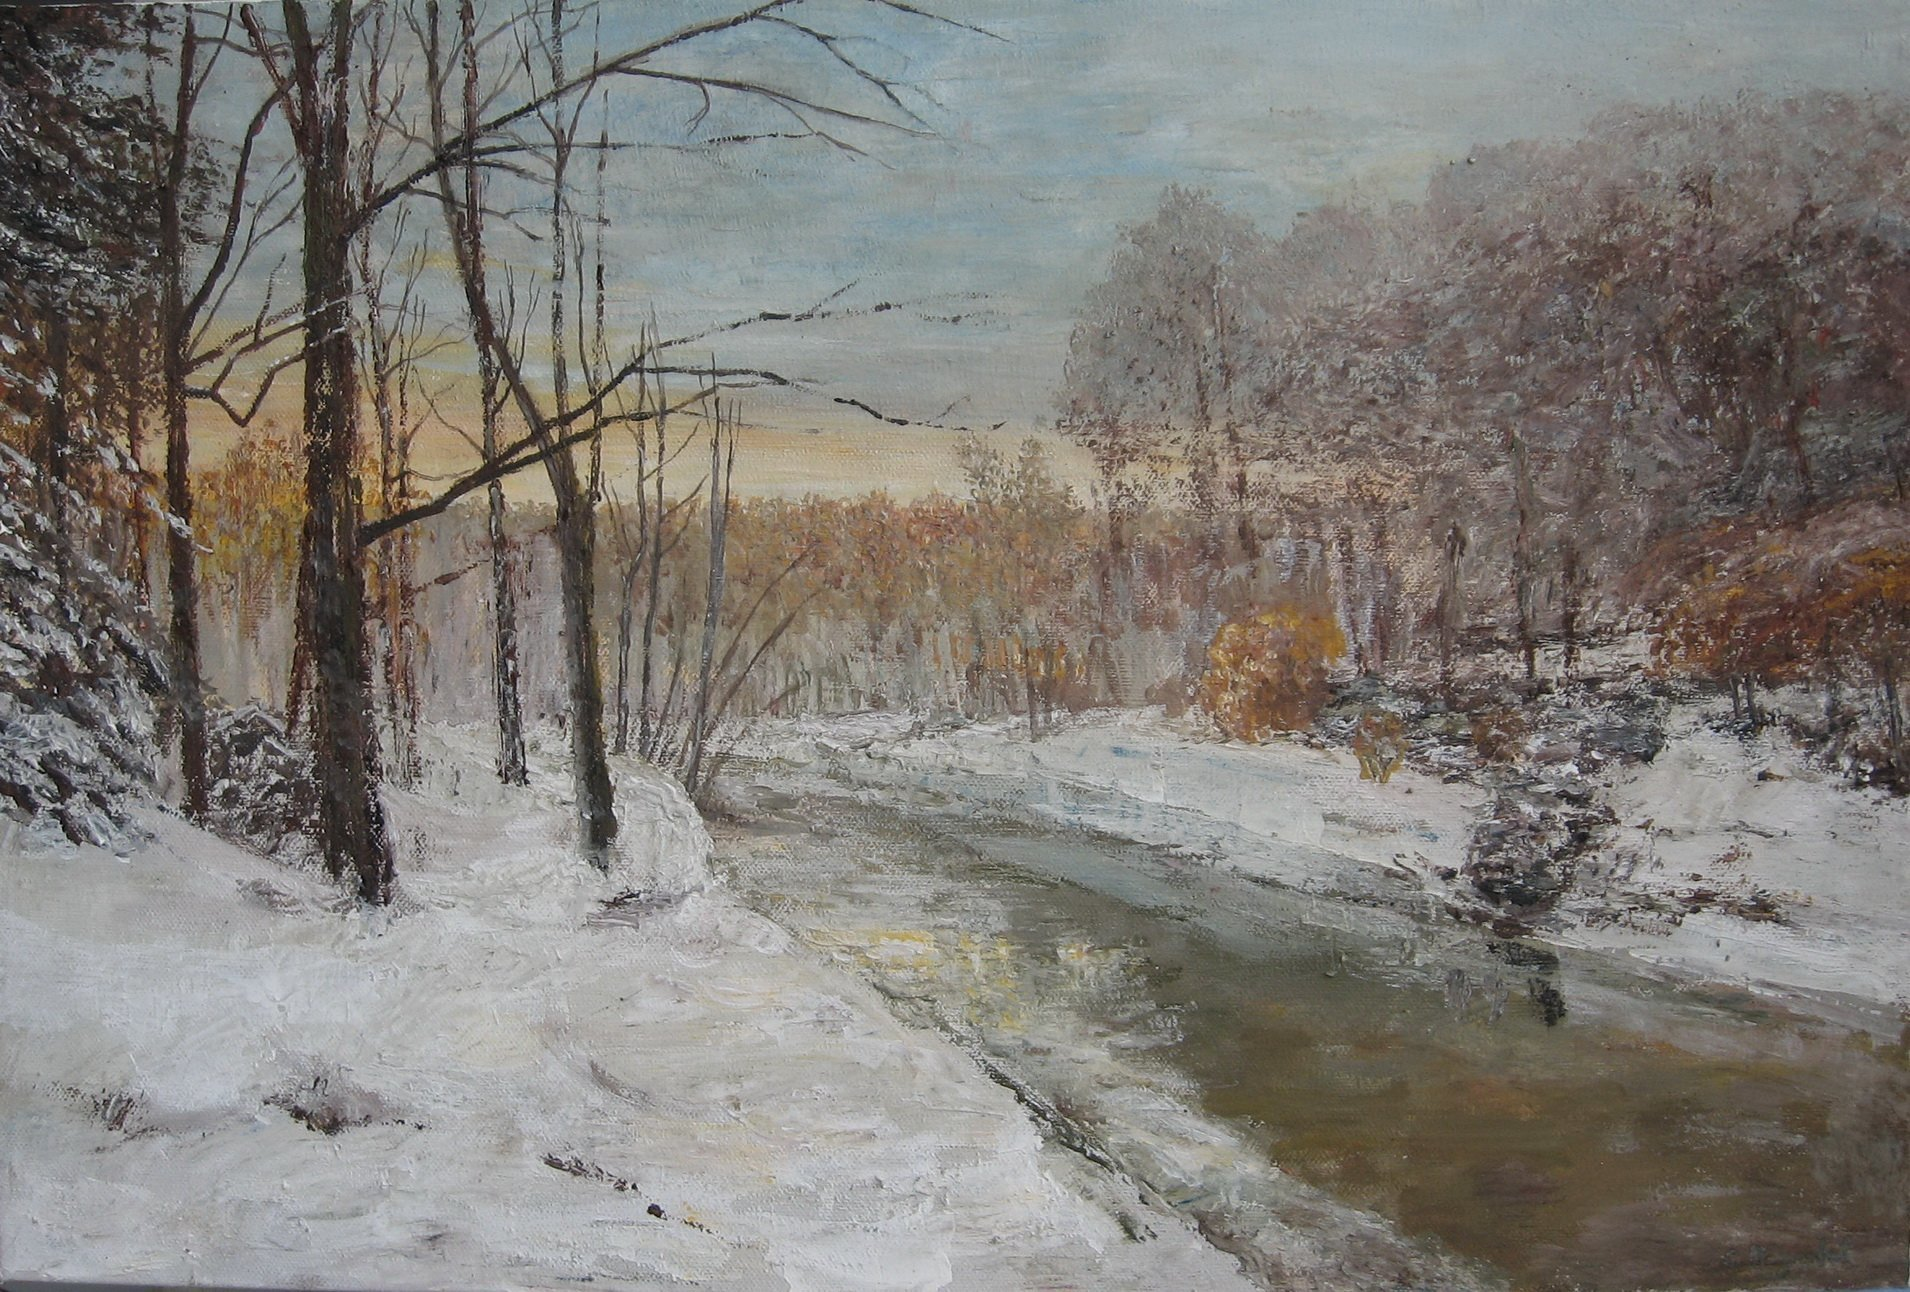 Slobodan Paunovic; Winter Motif With River, 2016, Original Painting Acrylic, 23.6 x 15.7 inches. Artwork description: 241 landscape, paintings, winter, ...